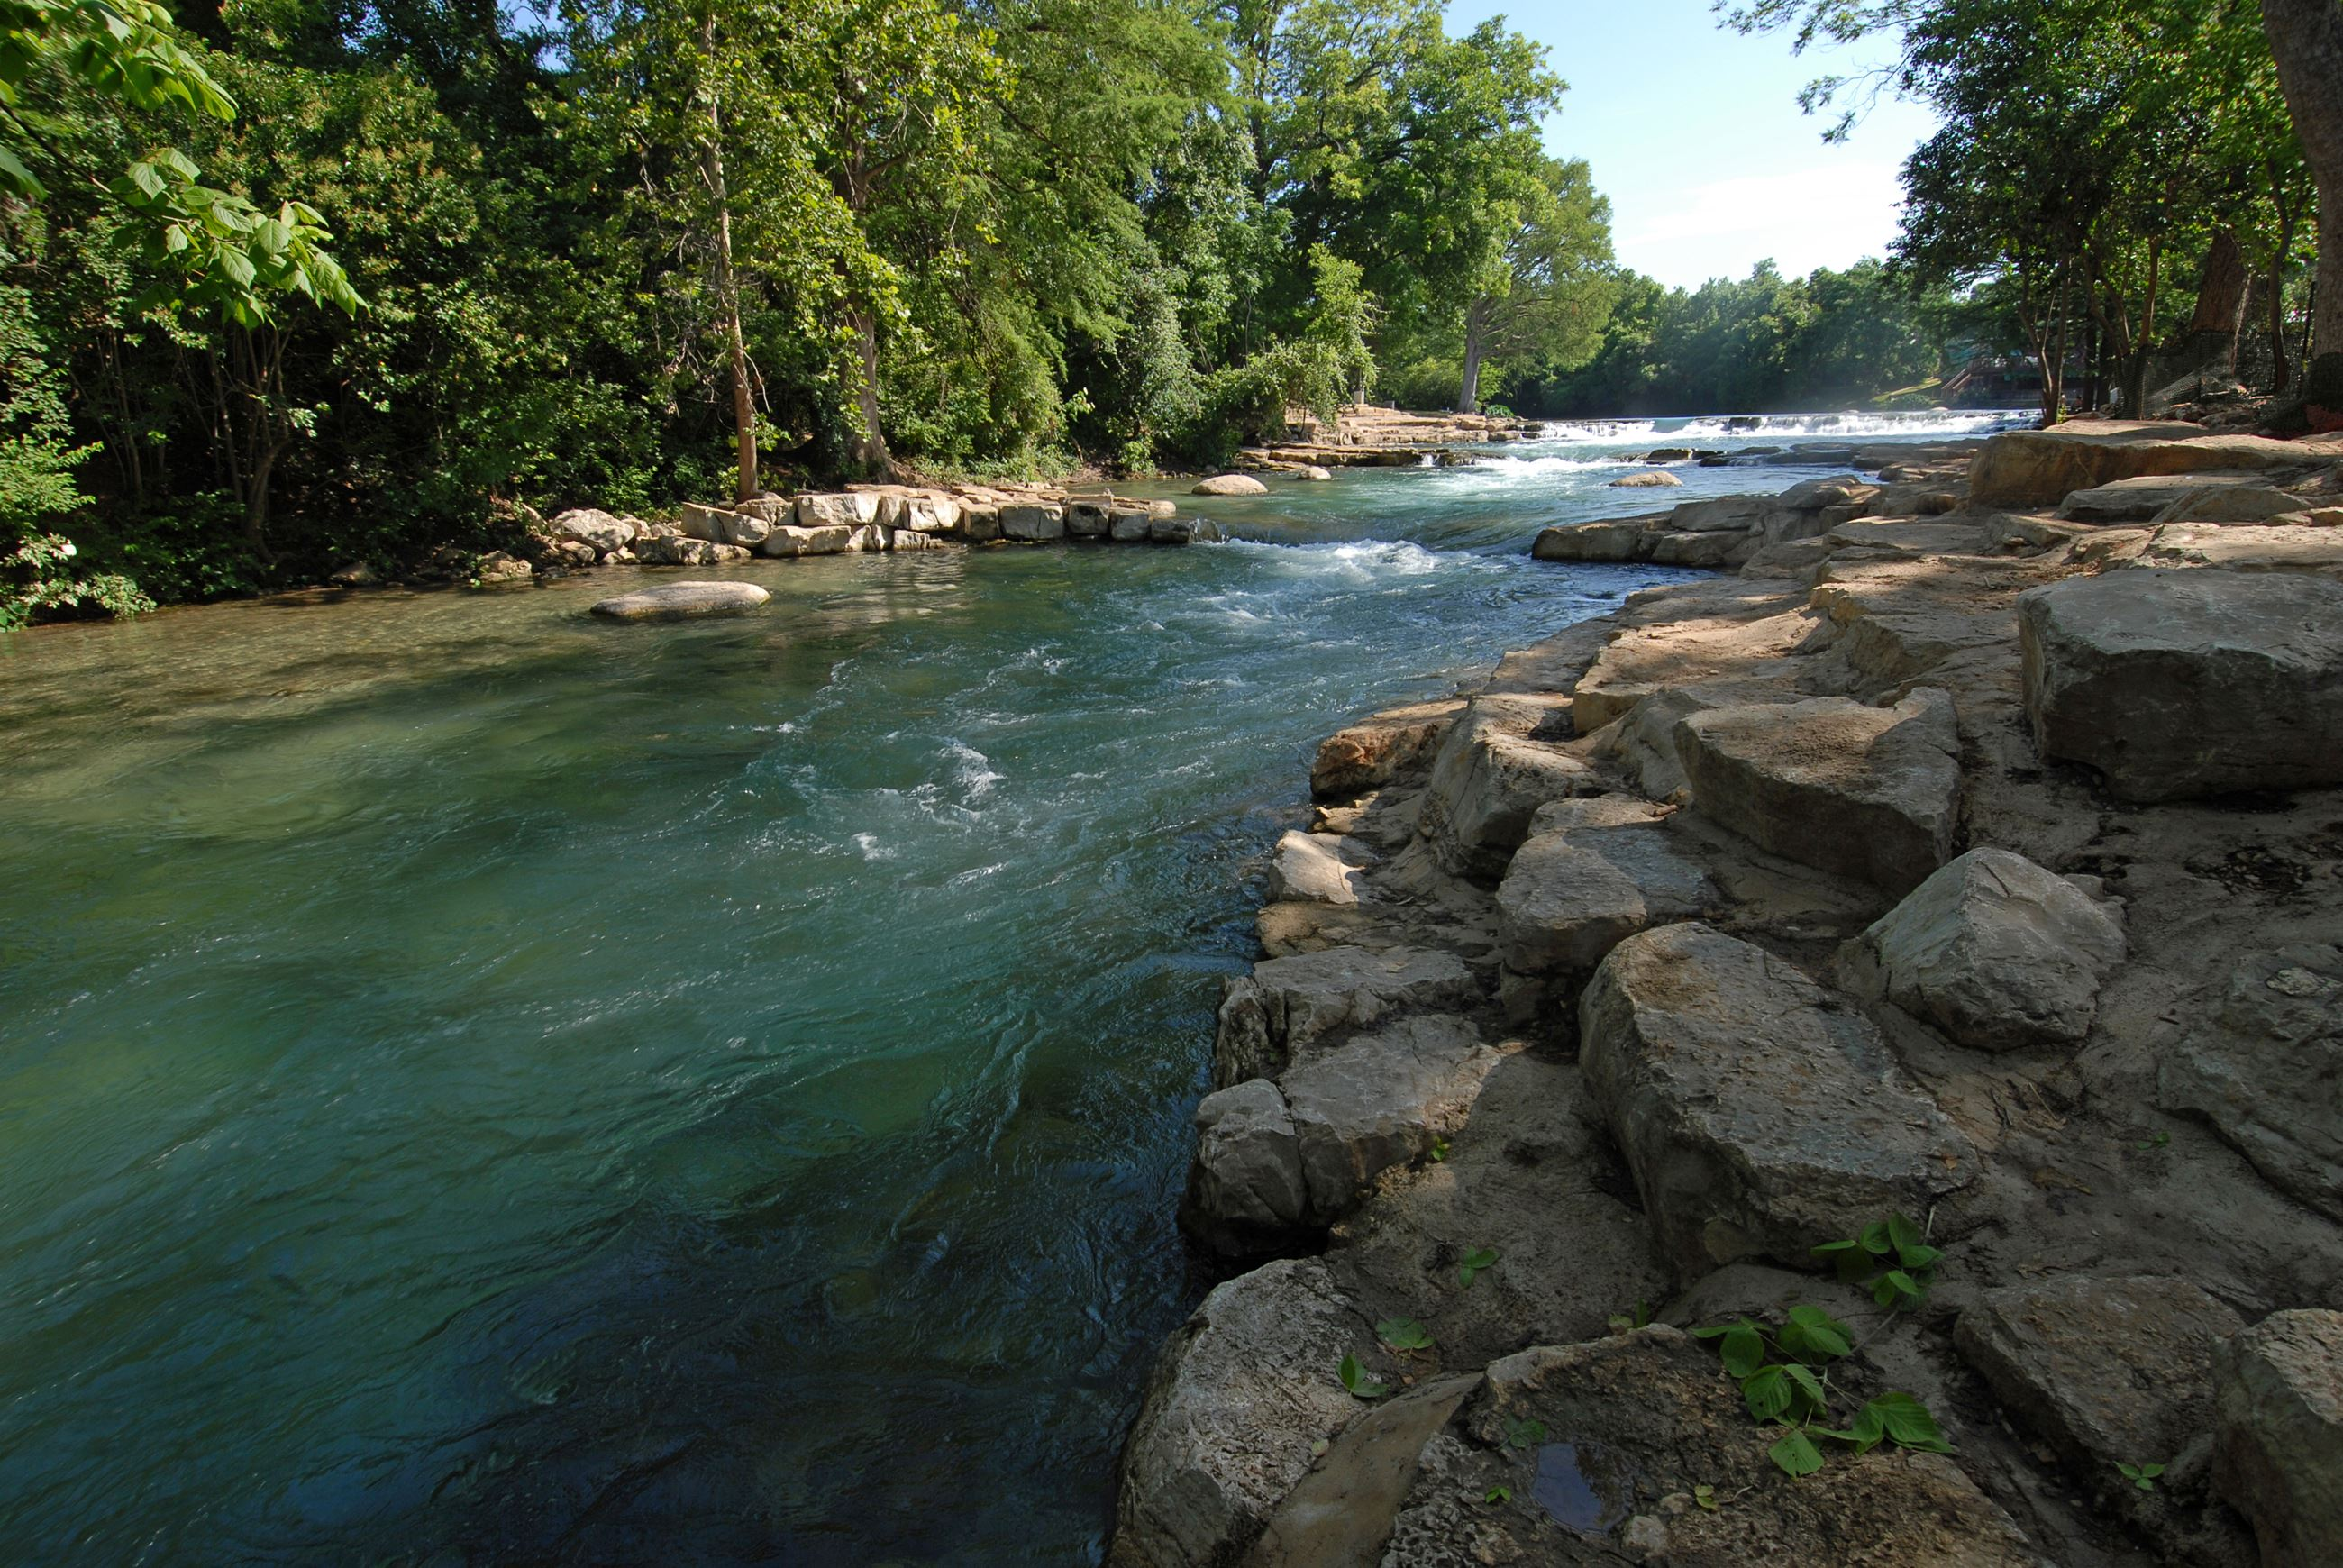 Photo of the falls at Rio Vista Park on the San Marcos River